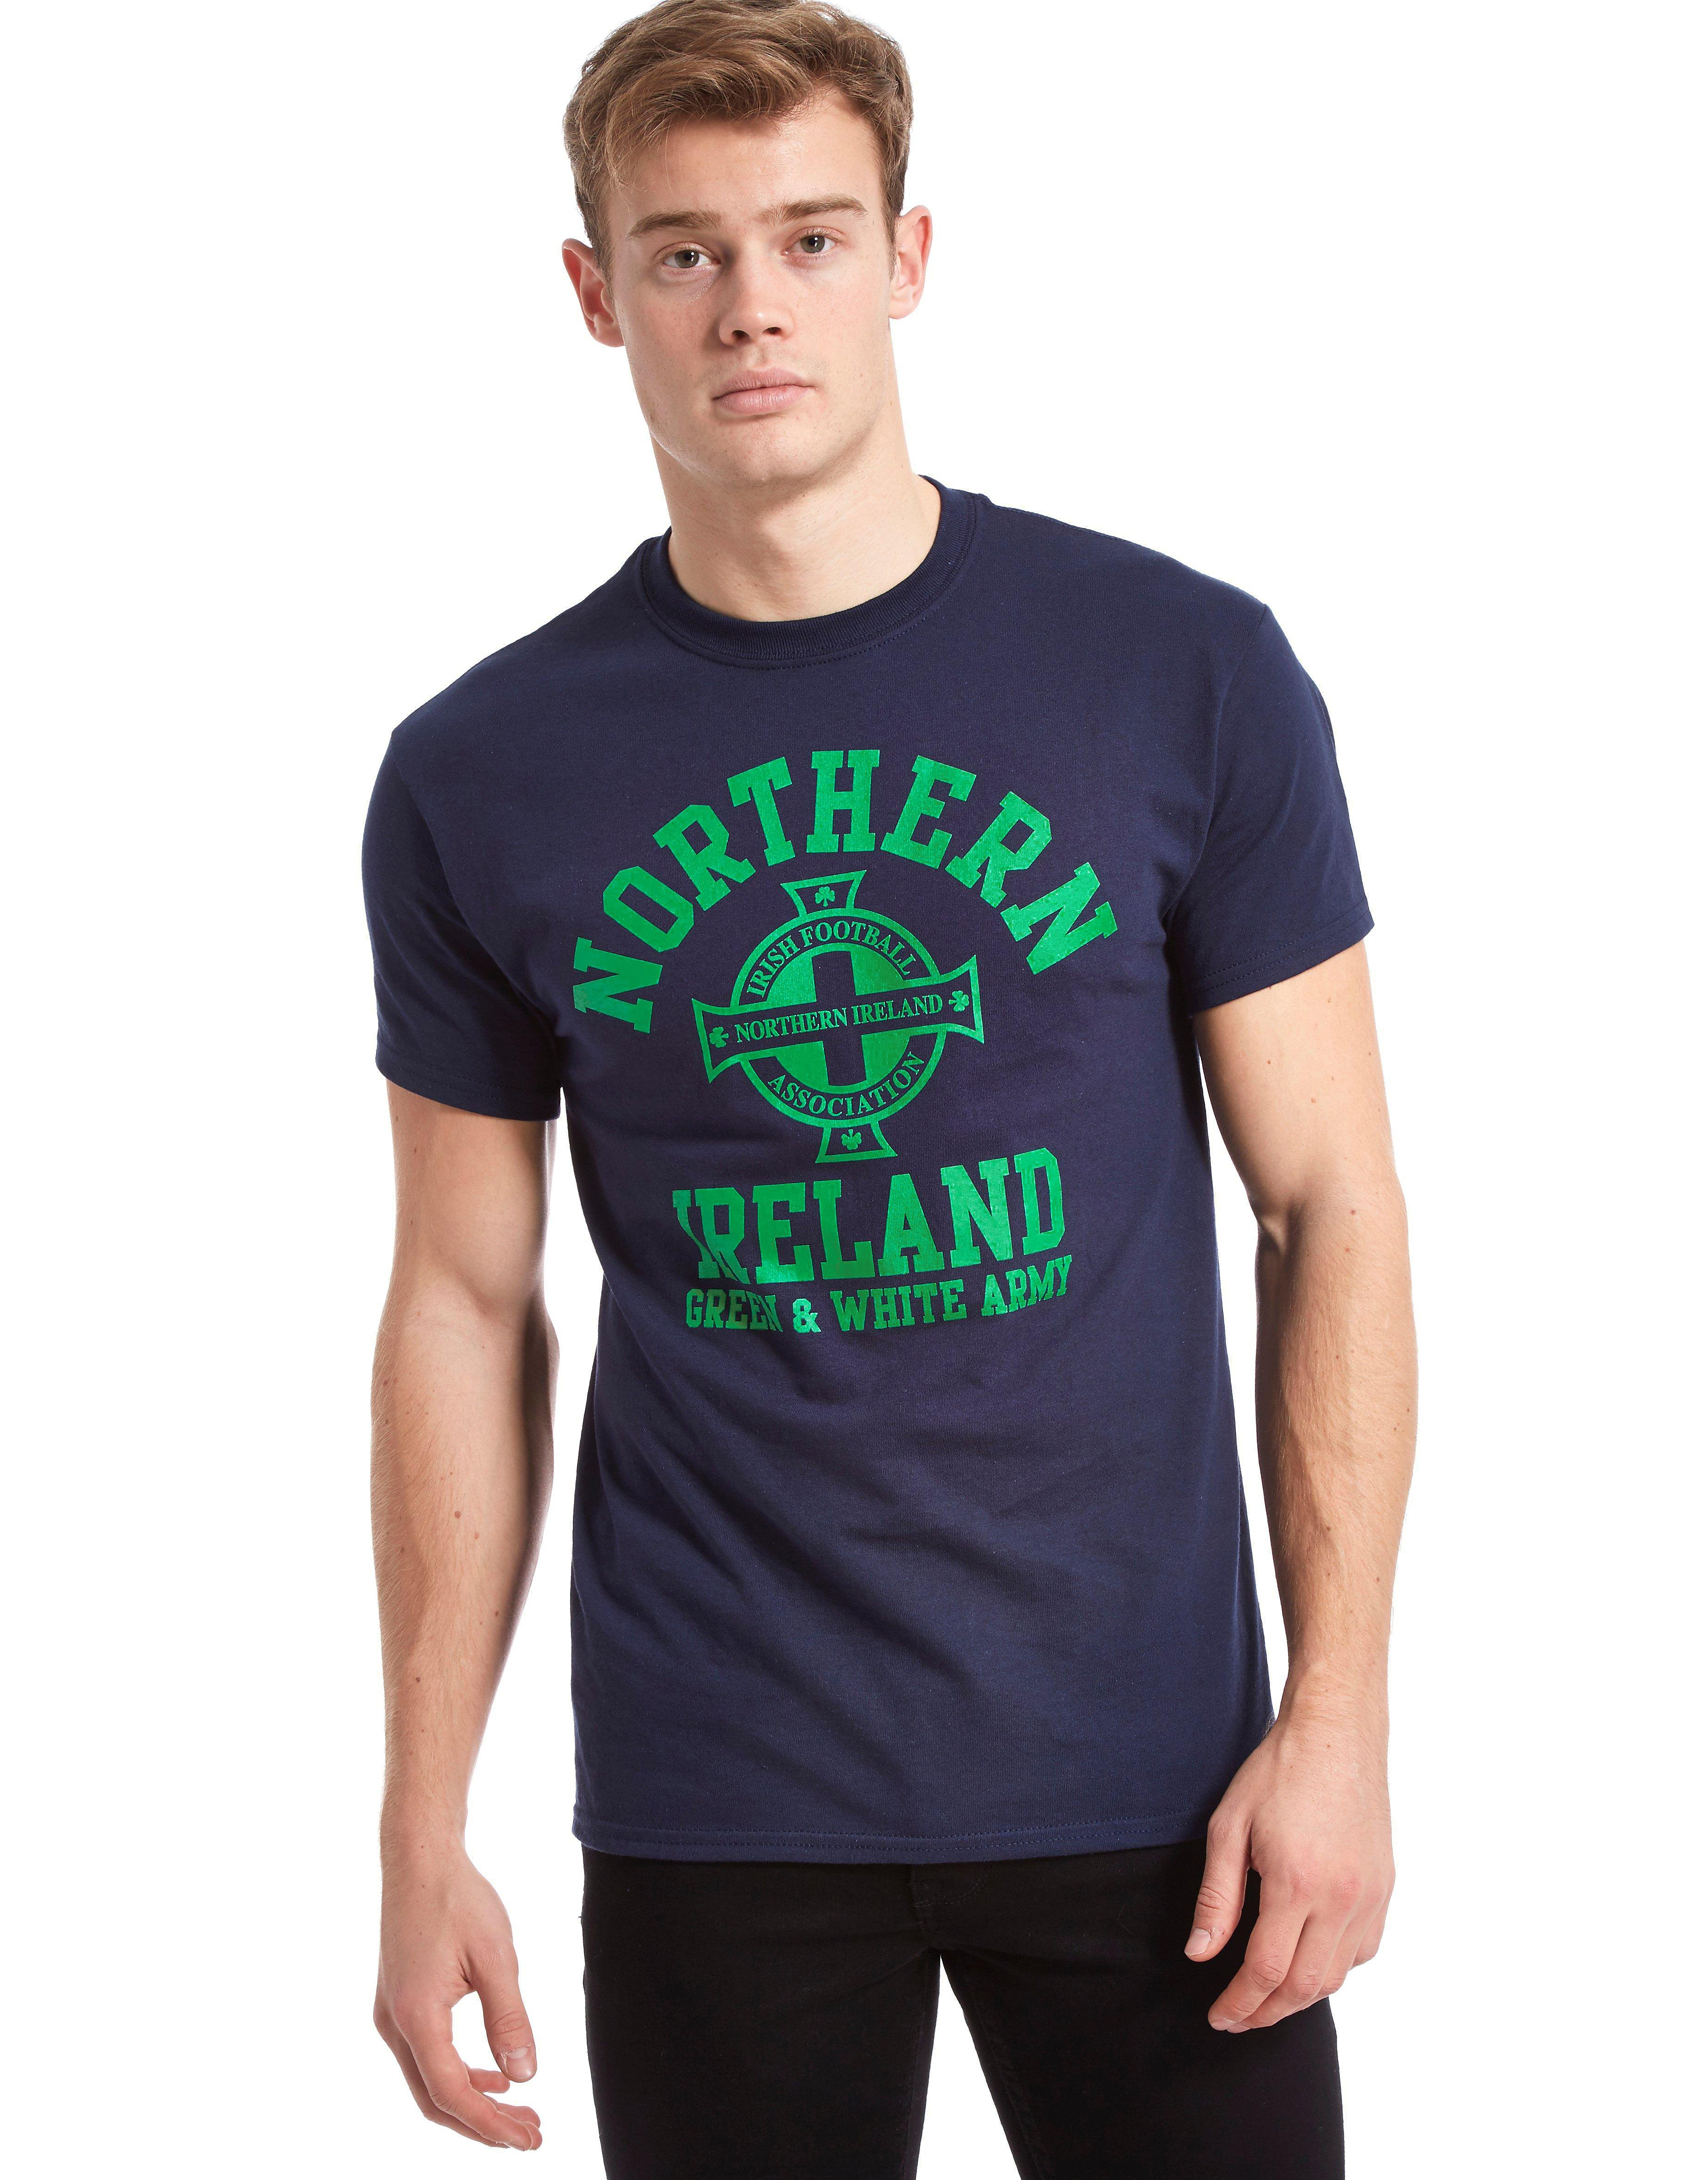 Official Team Norther Ireland Arch t-shirt